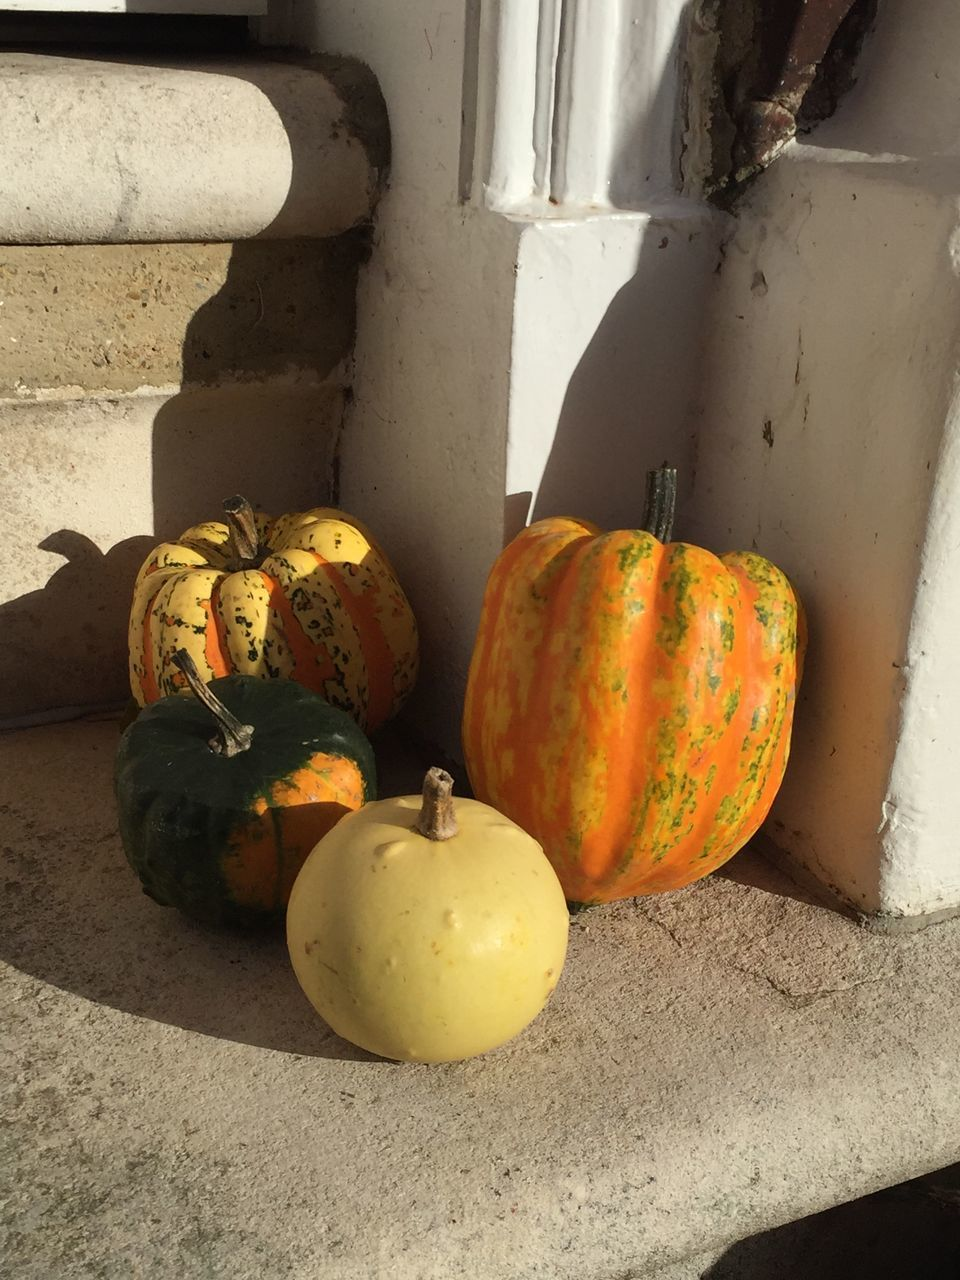 CLOSE-UP OF PUMPKINS ON STONE